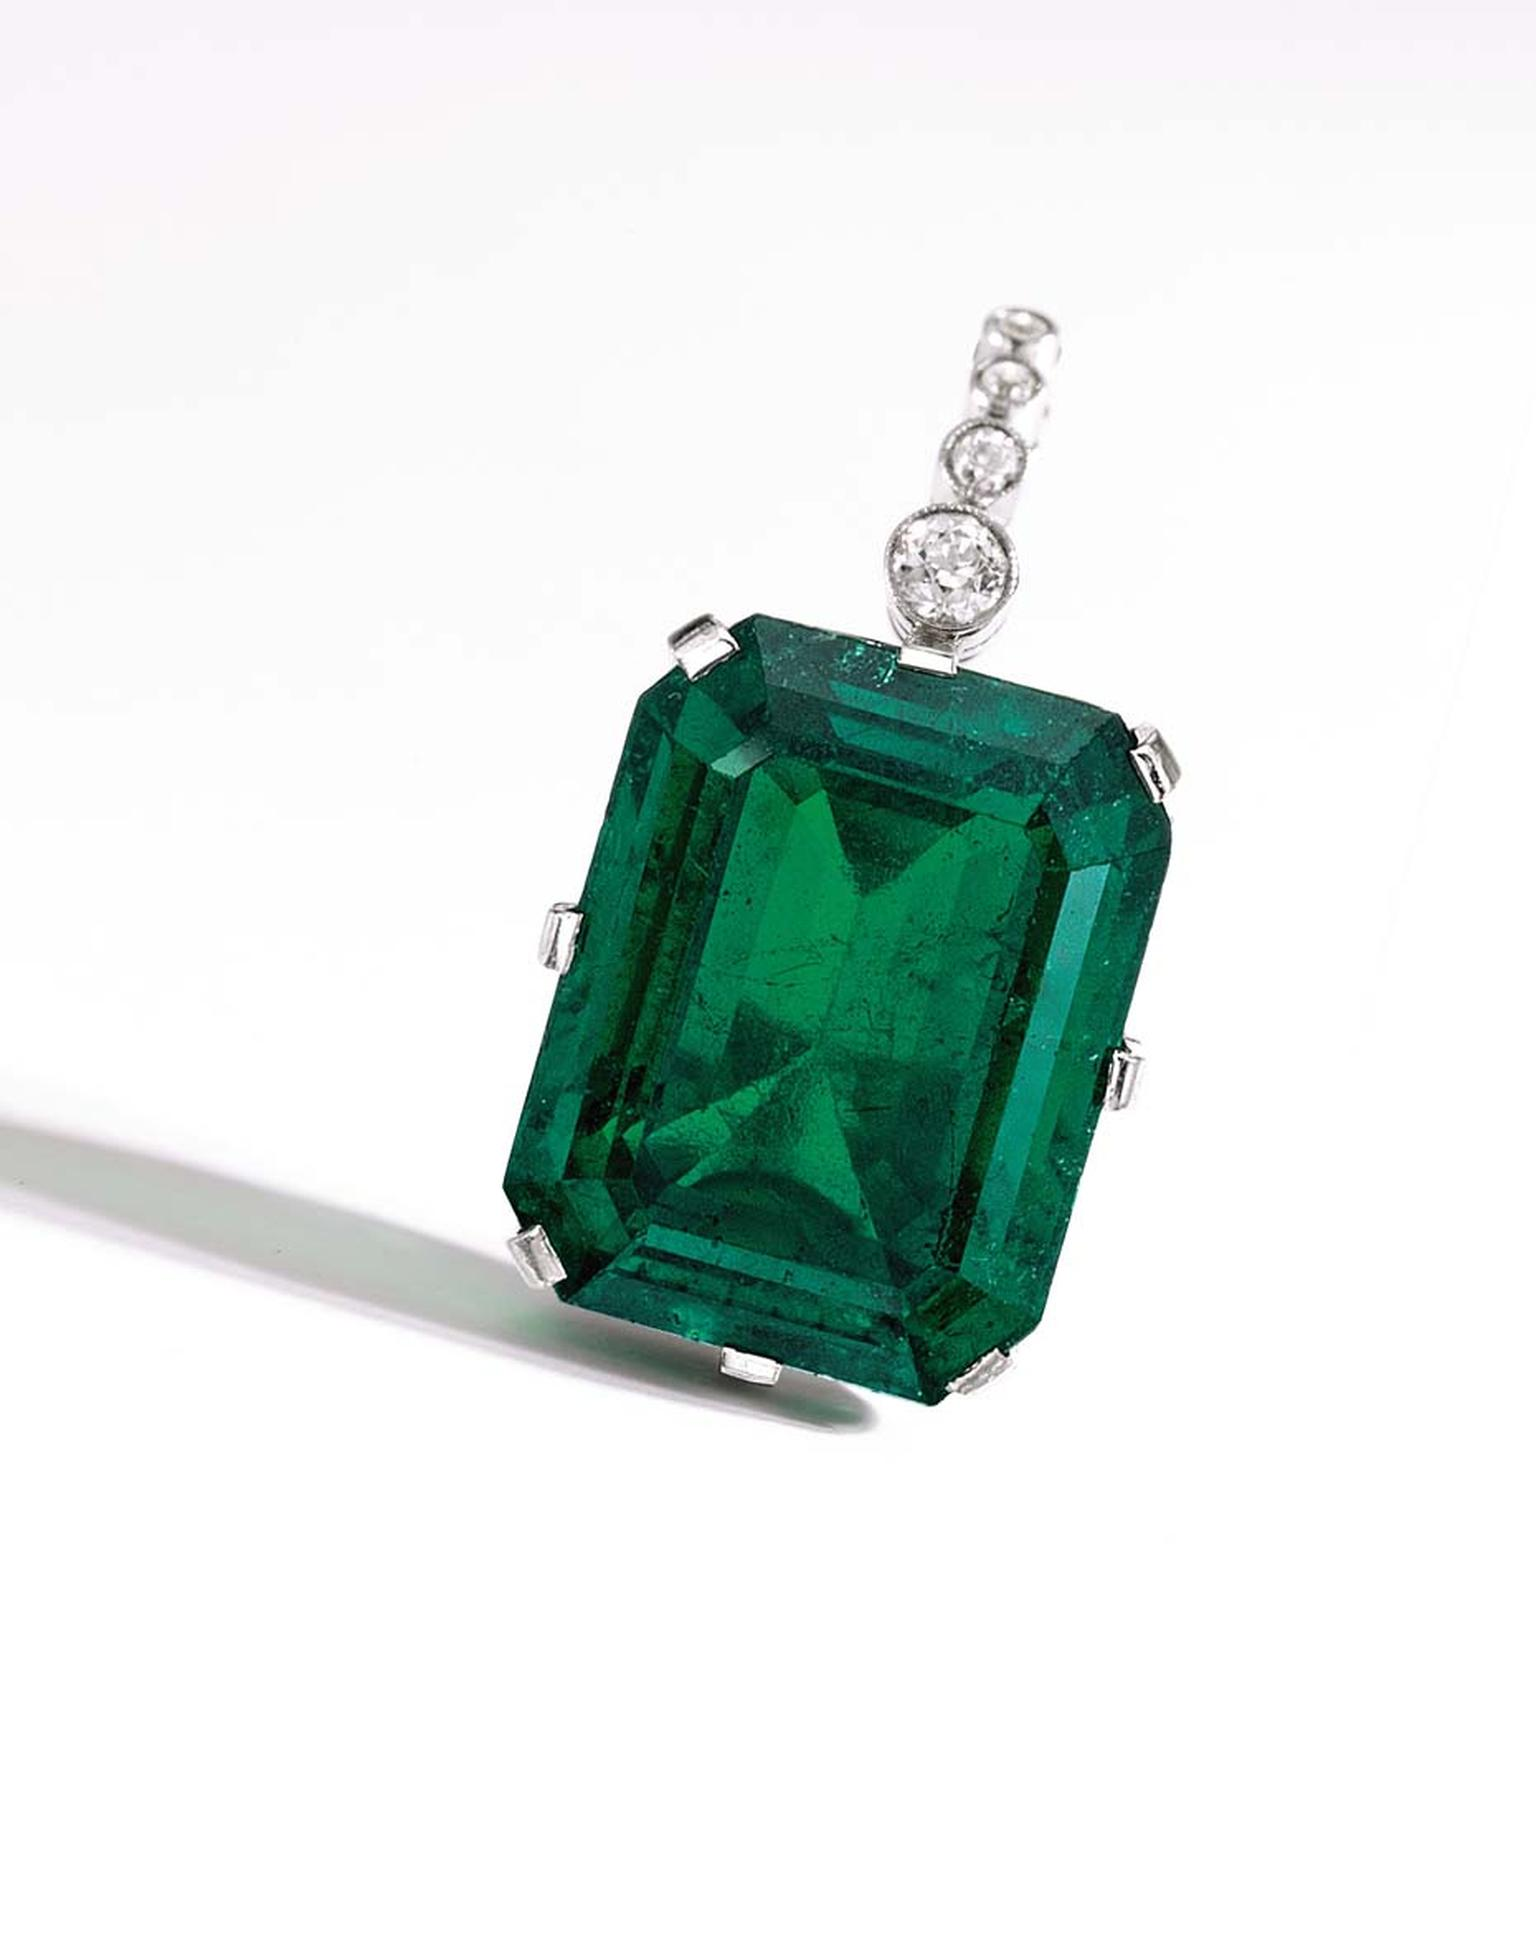 An important platinum, diamond and Colombian emerald pendant. The 35.02ct emerald belonged to the wife of Henry Flagler, American industrialist and pioneering developer of Florida's eastern coastline, and sold for $2.8 million.